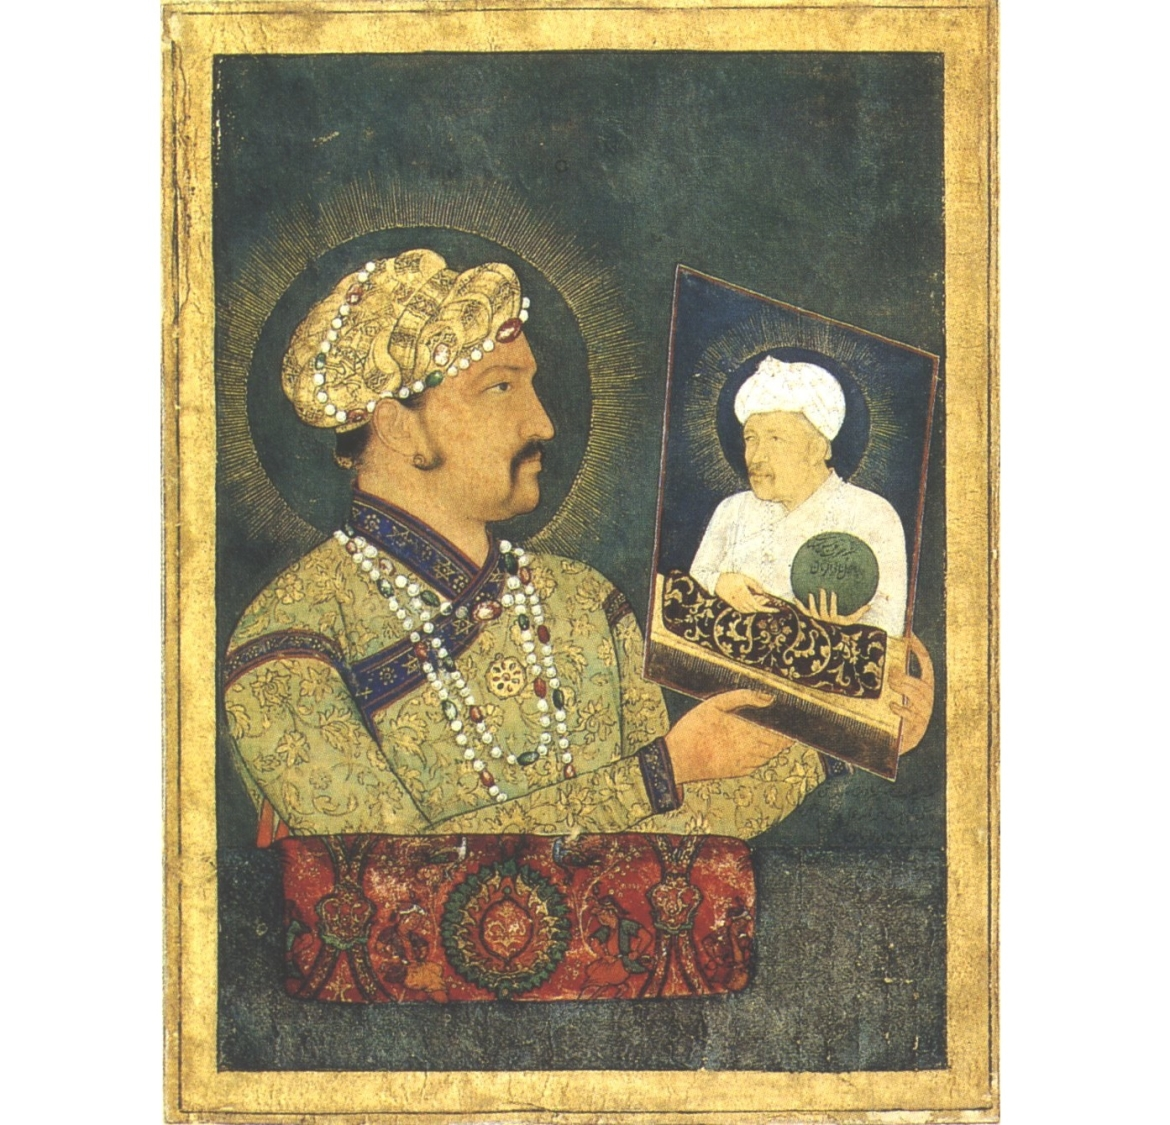 Jahangir with portrait of Akbar